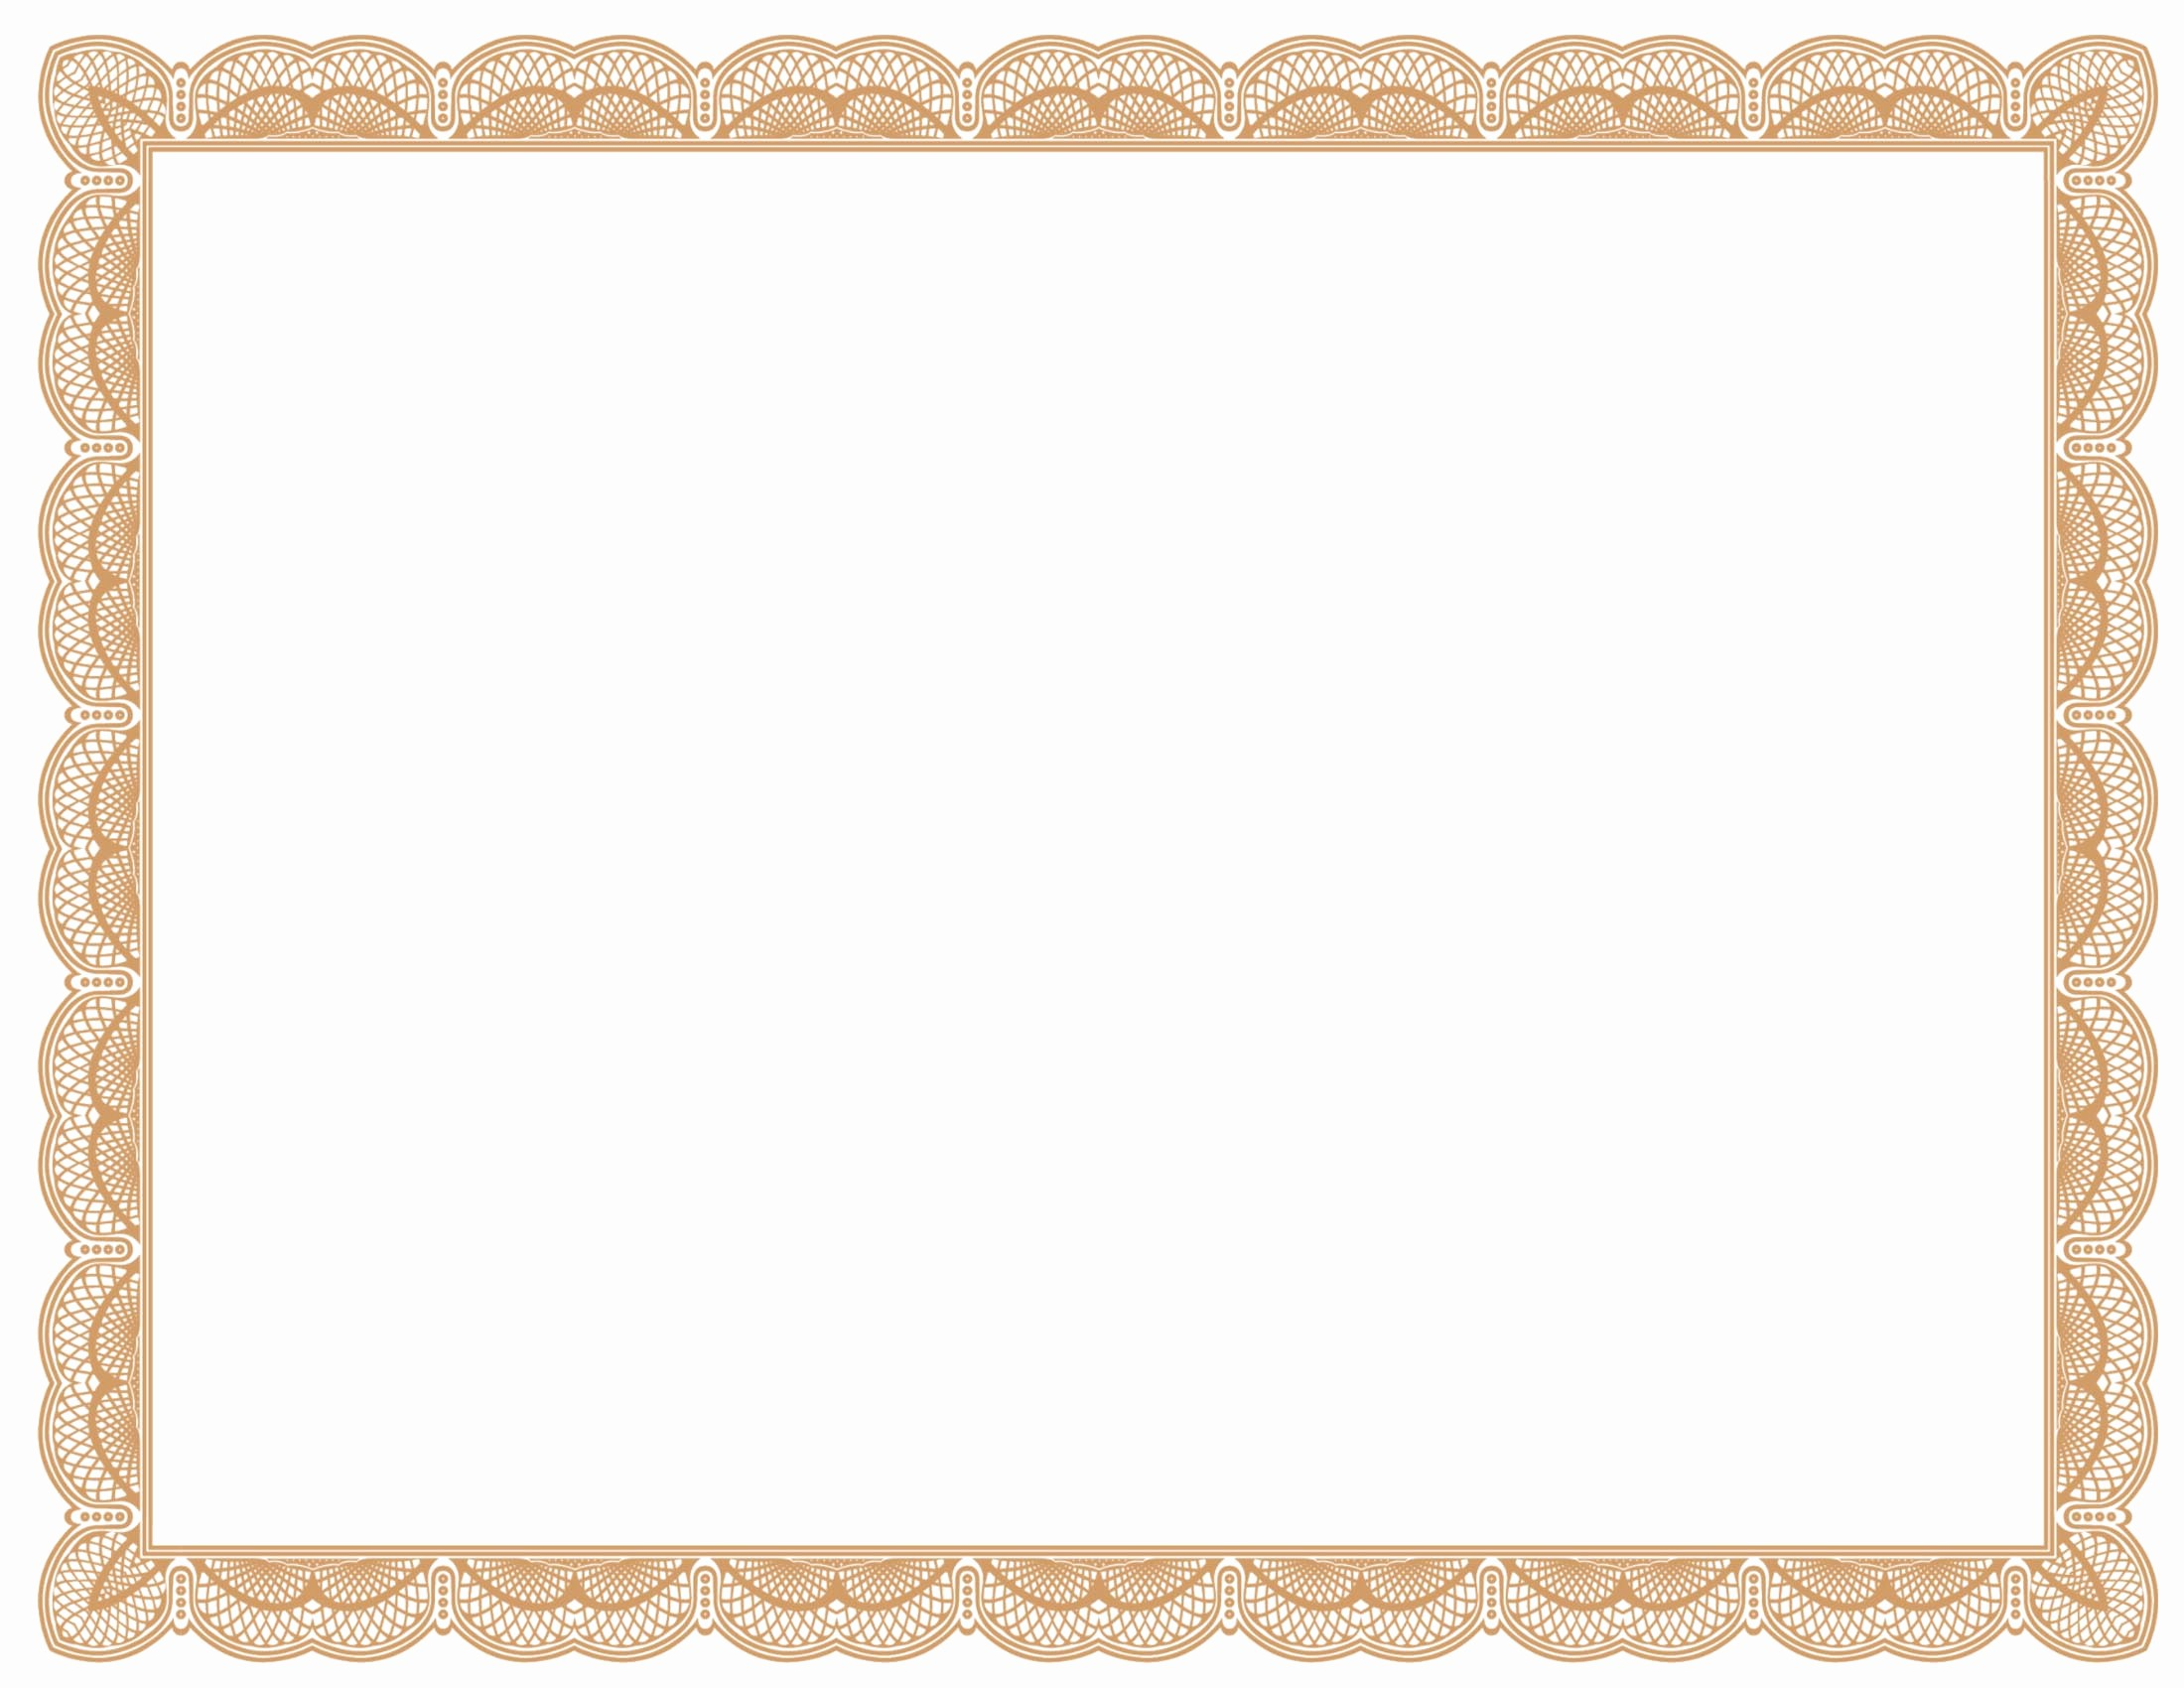 Free Printable Blank Certificate Borders Unique 5 New Certificate Border Templates